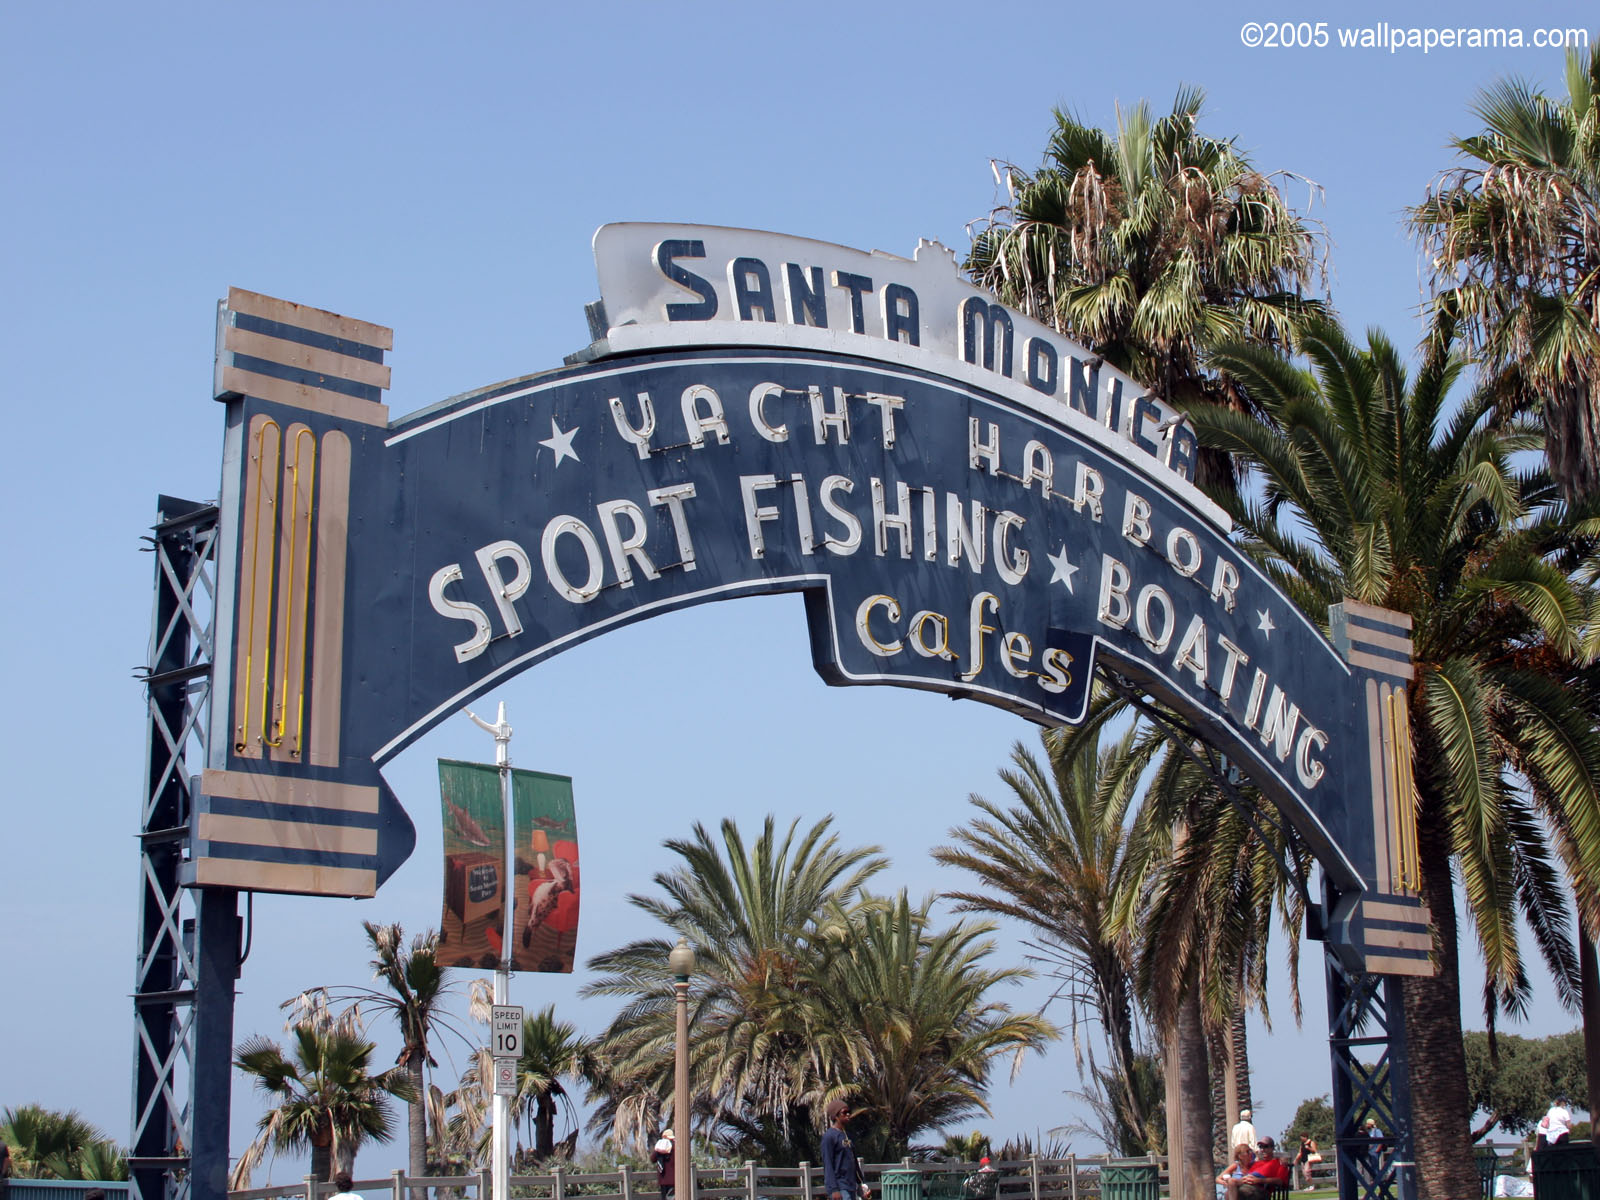 Santa Monica Peer Wallpaper HD Backgrounds Images Pictures 1600x1200